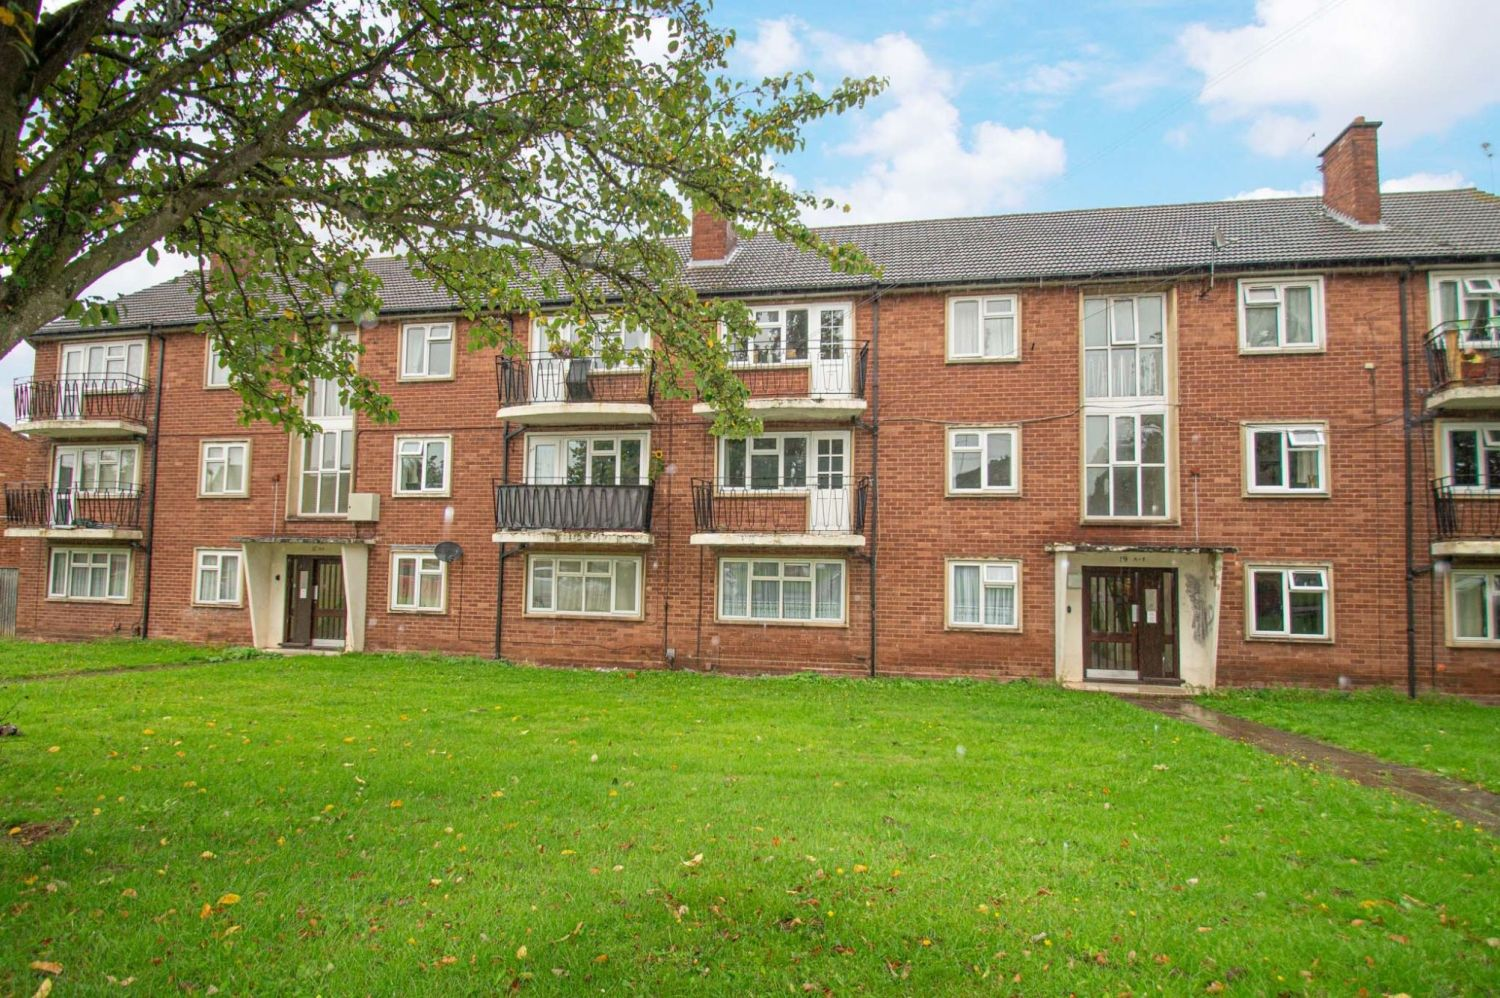 2 bed flat for sale in Malvern Avenue, Stourbridge - Property Image 1